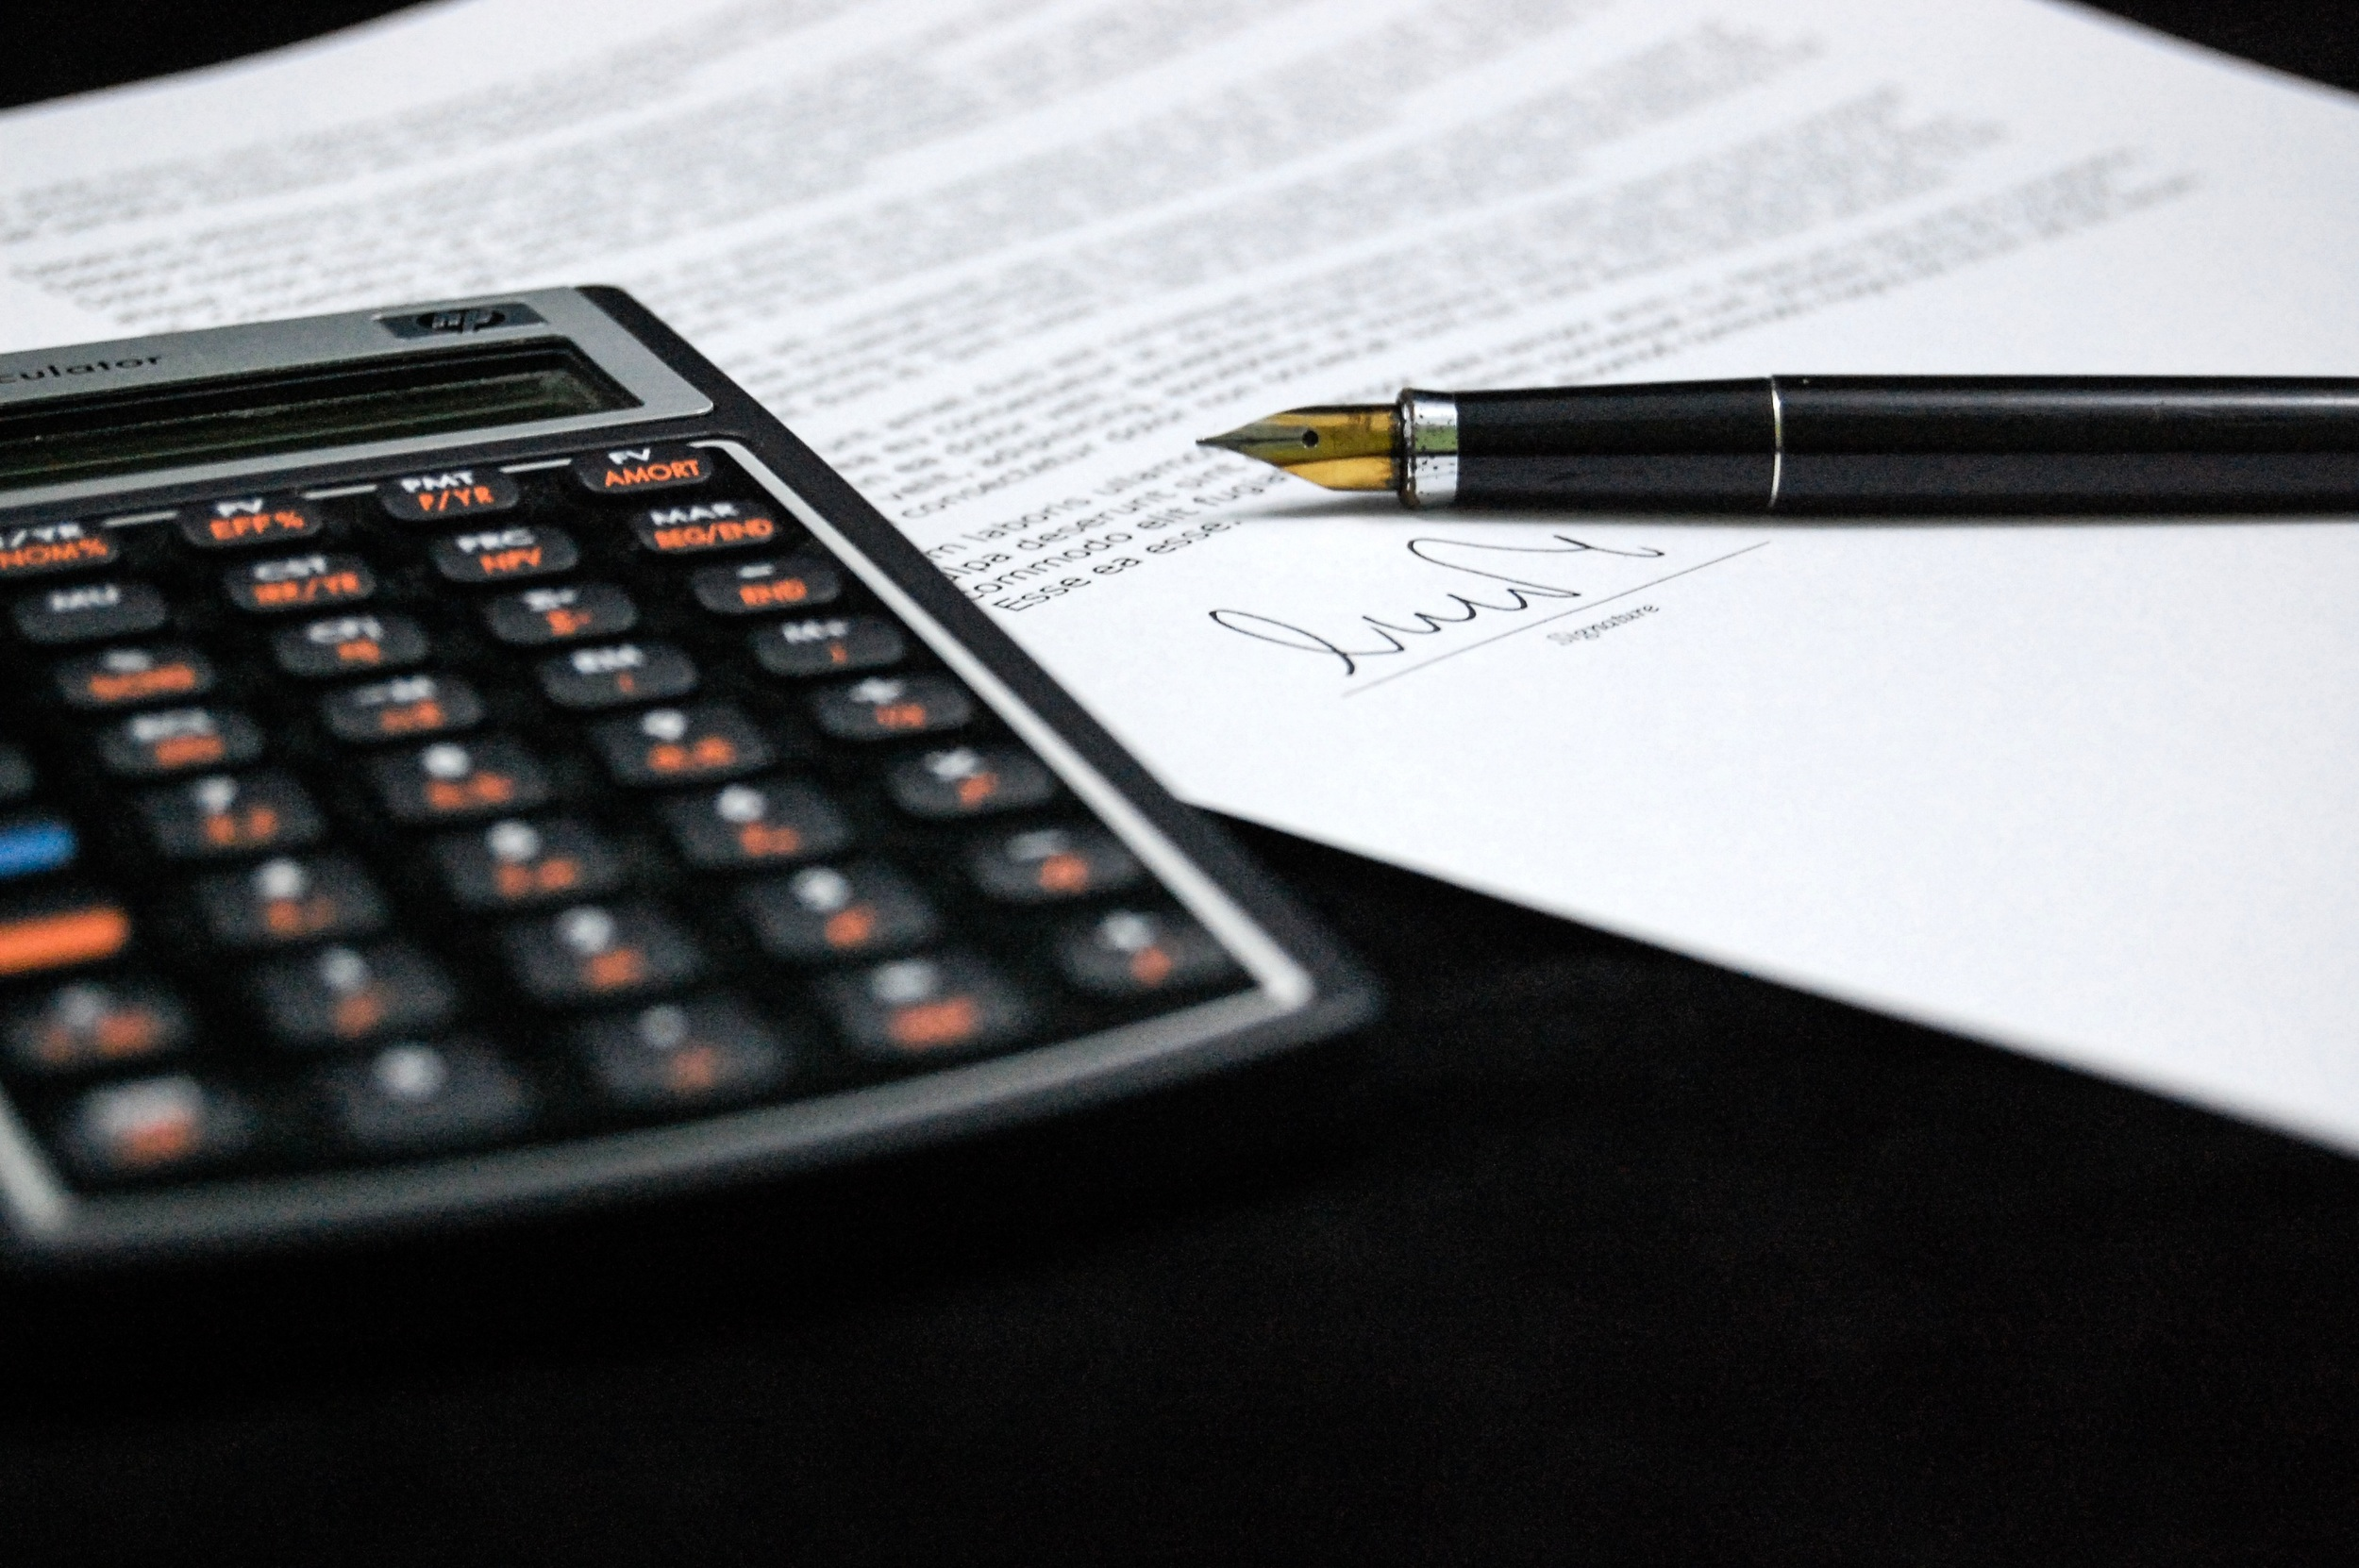 Calculator and Document with Fountain Pen